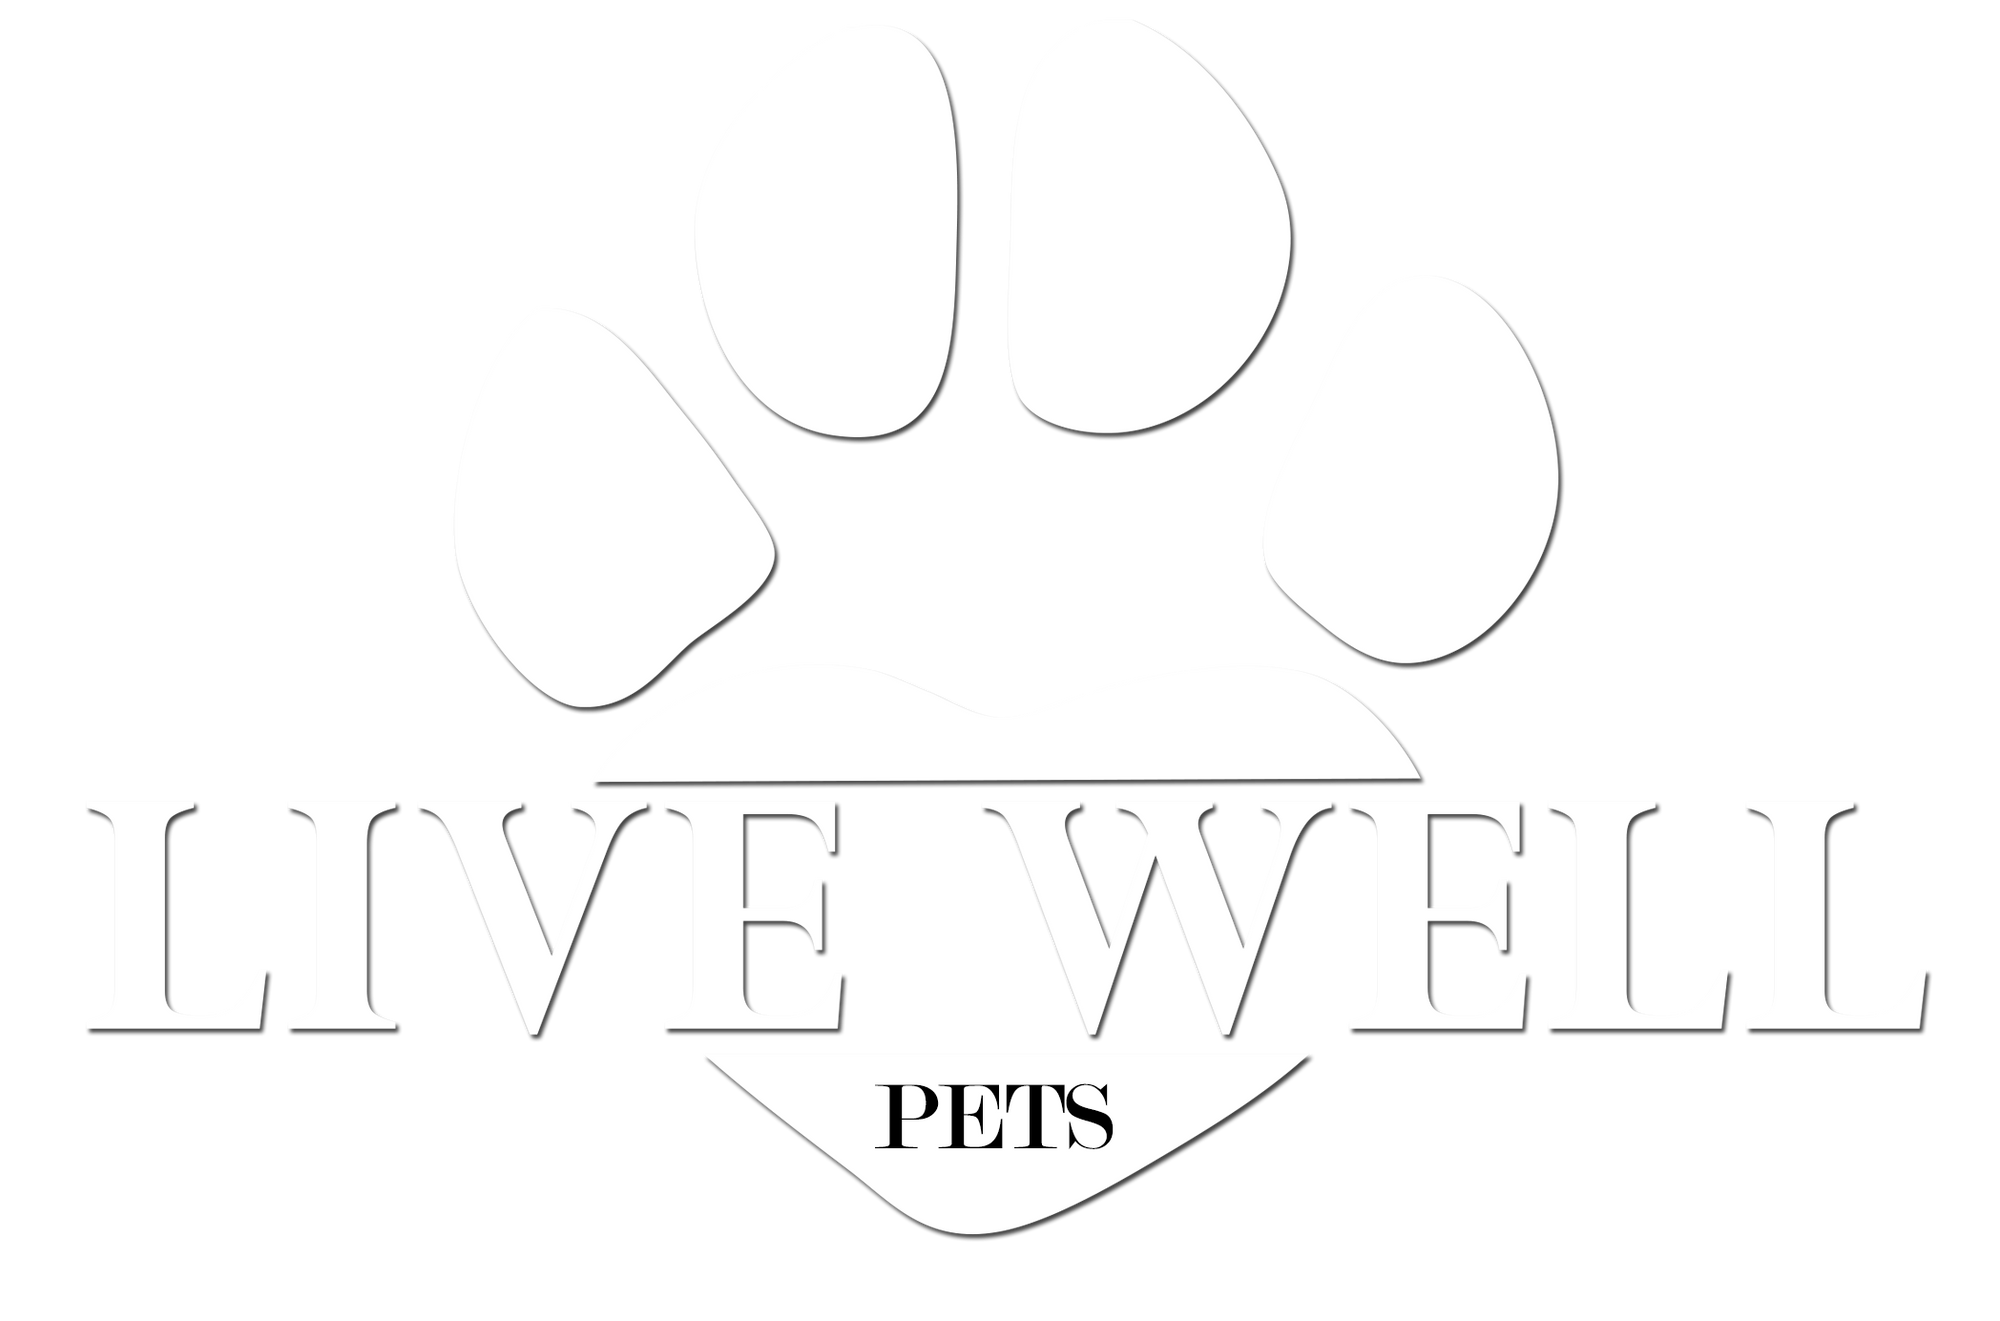 Live Well Pets